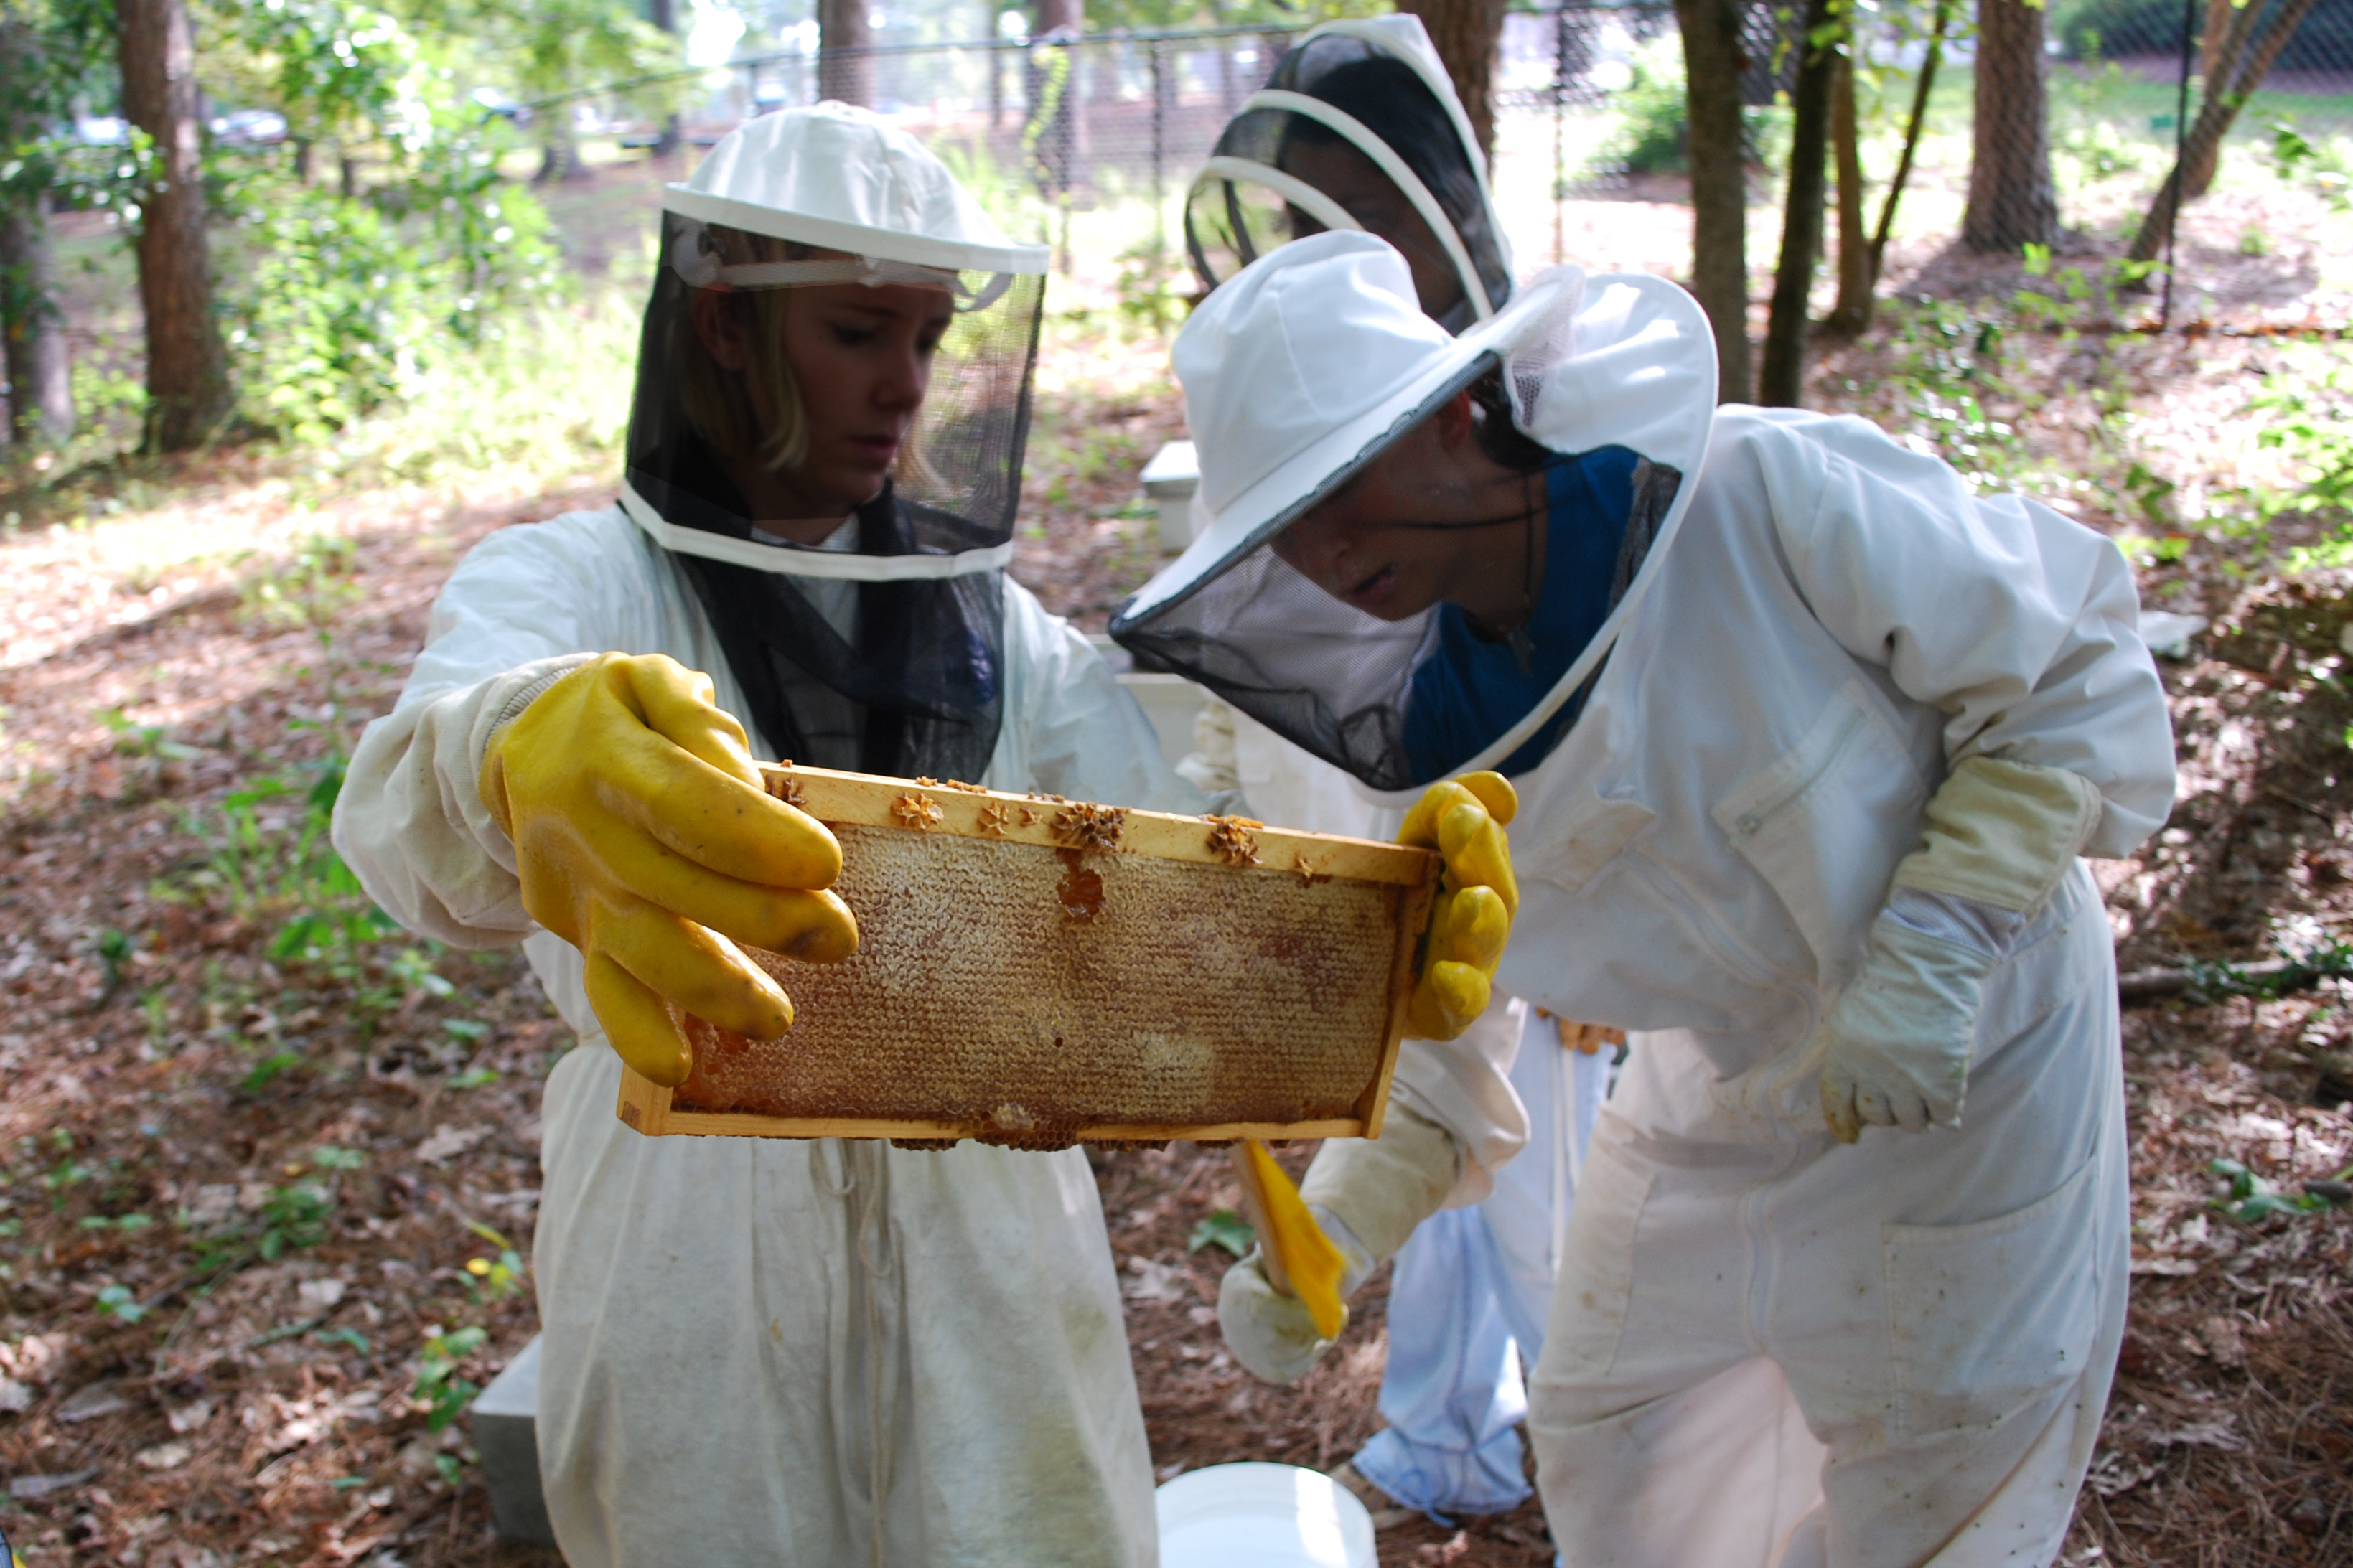 Staff members from Rock Eagle 4-H Center are shown checking a frame from a bee hive at the center in Eatonton, Ga.